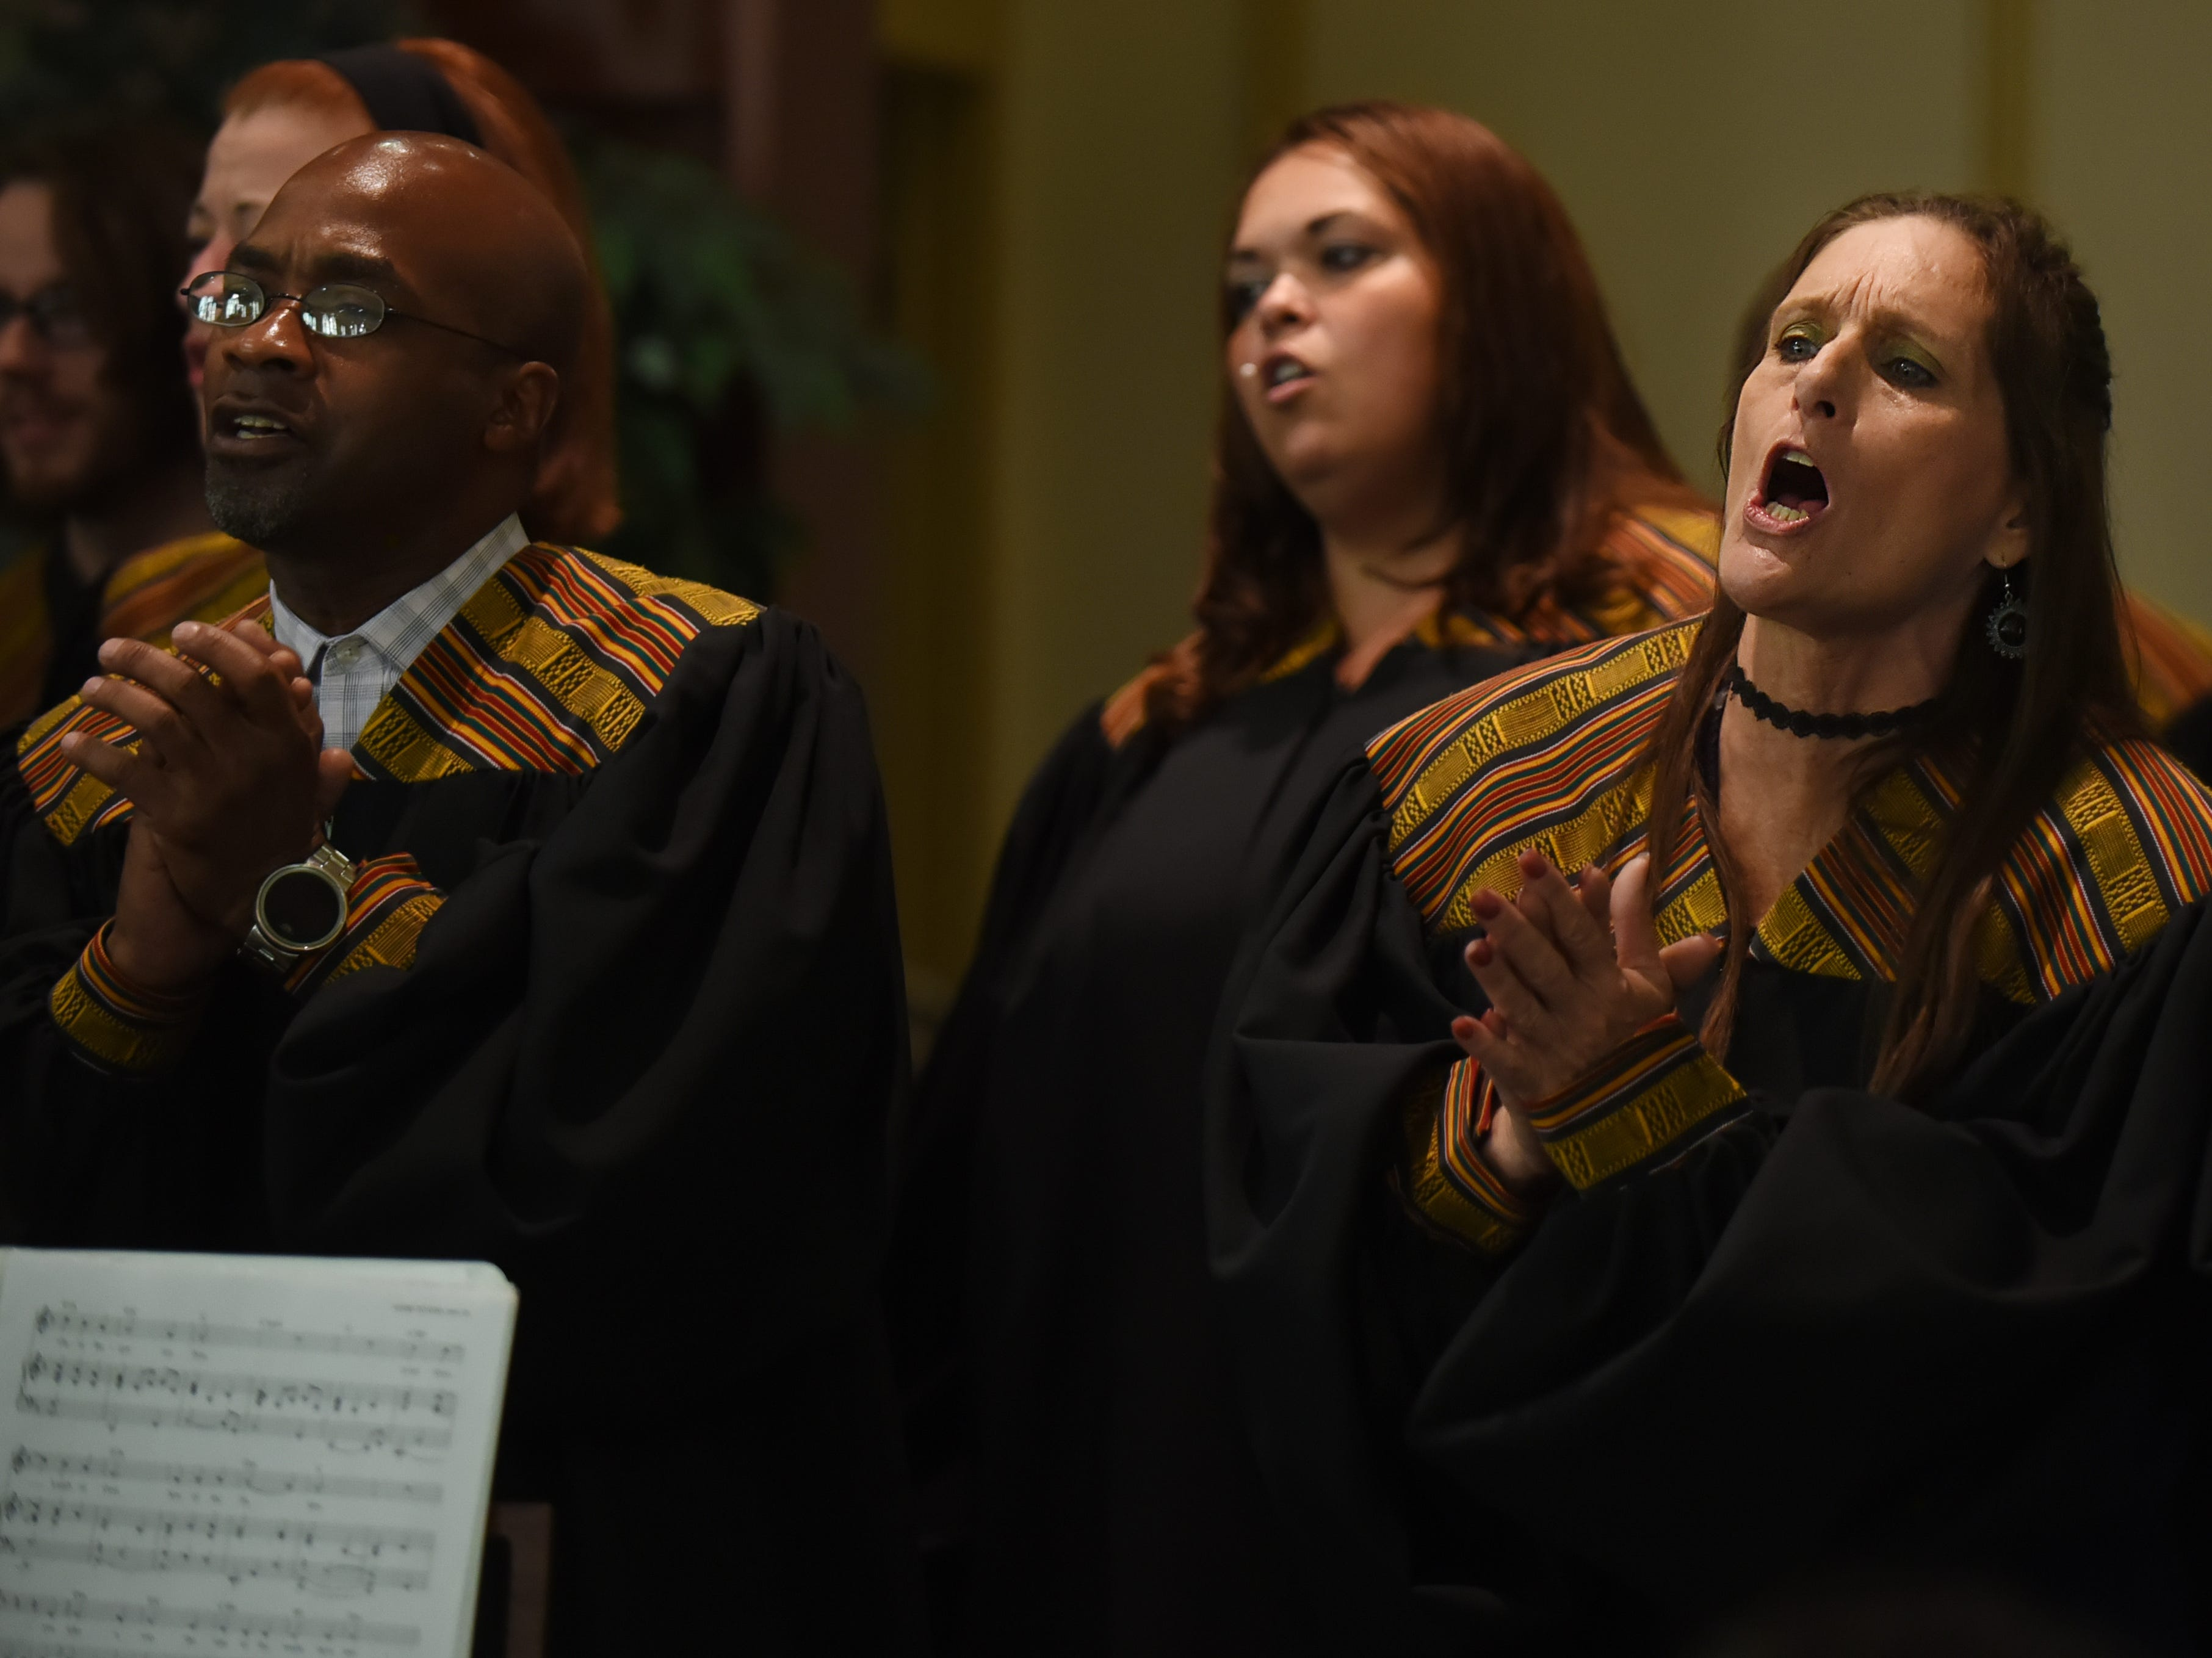 Darlene Walsh, an alumna of Straight & Narrow and a singer in its gospel choir, during a performance at St. Joseph's Roman Catholic Church in Lincoln Park on Sunday, Oct. 14, 2018.